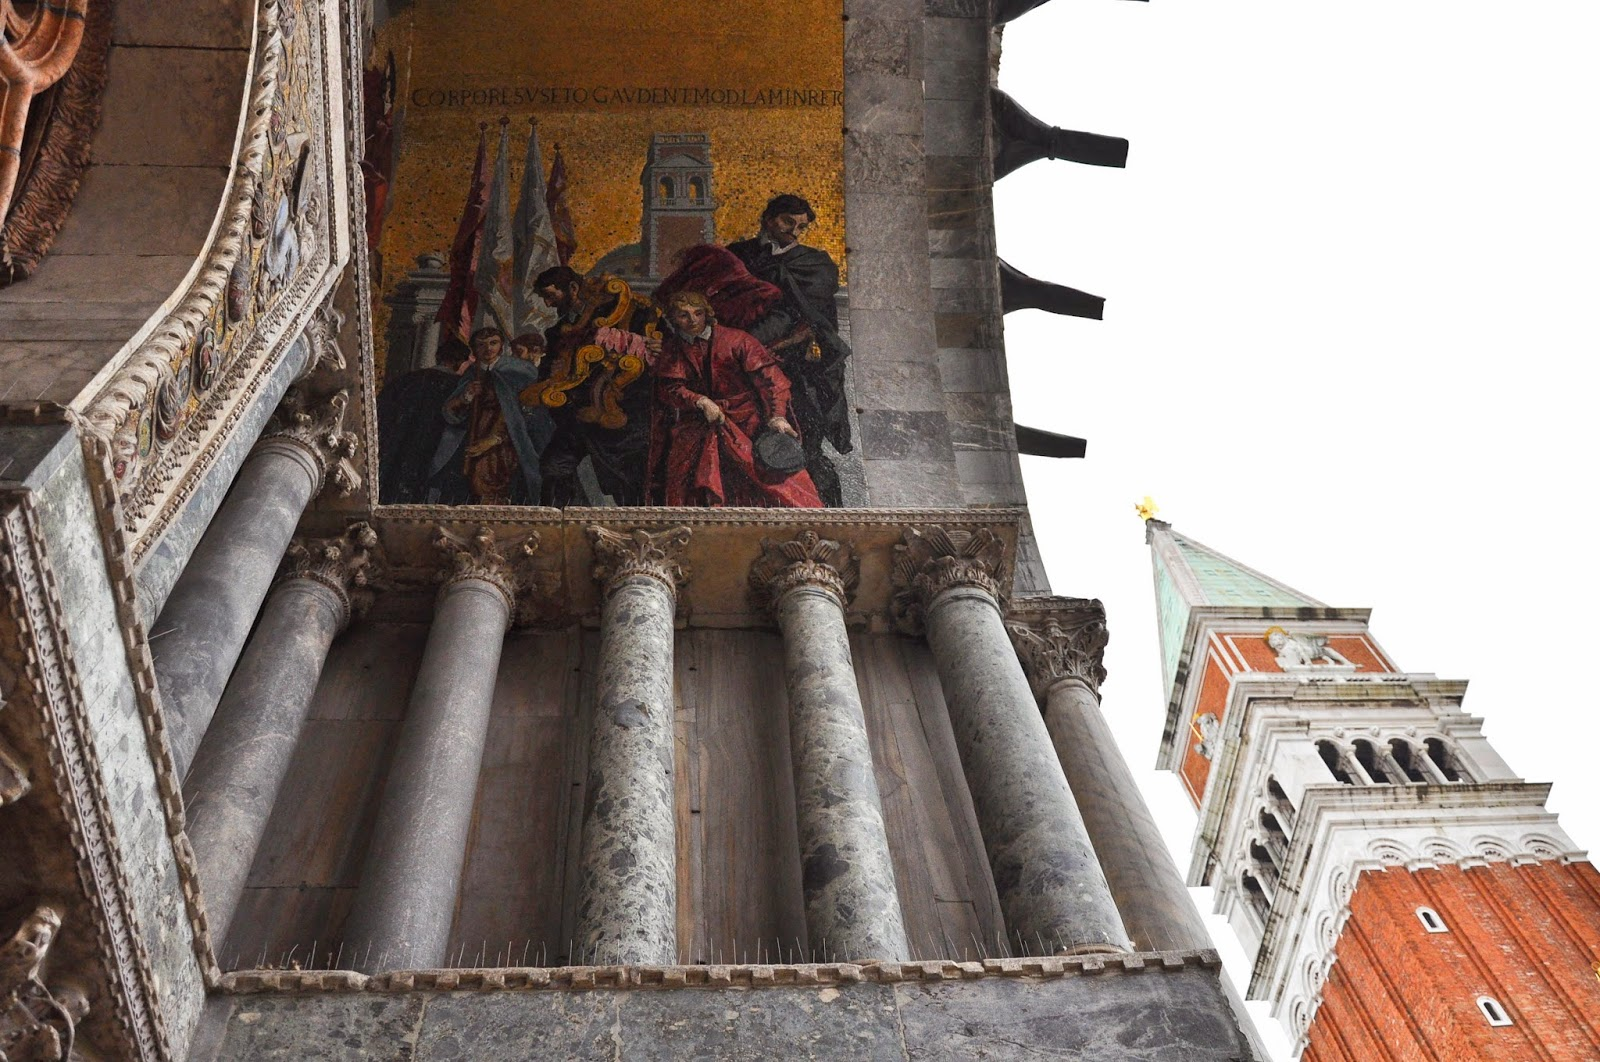 The restored mosaics on the facade of St. Mark's Basilica in Venice